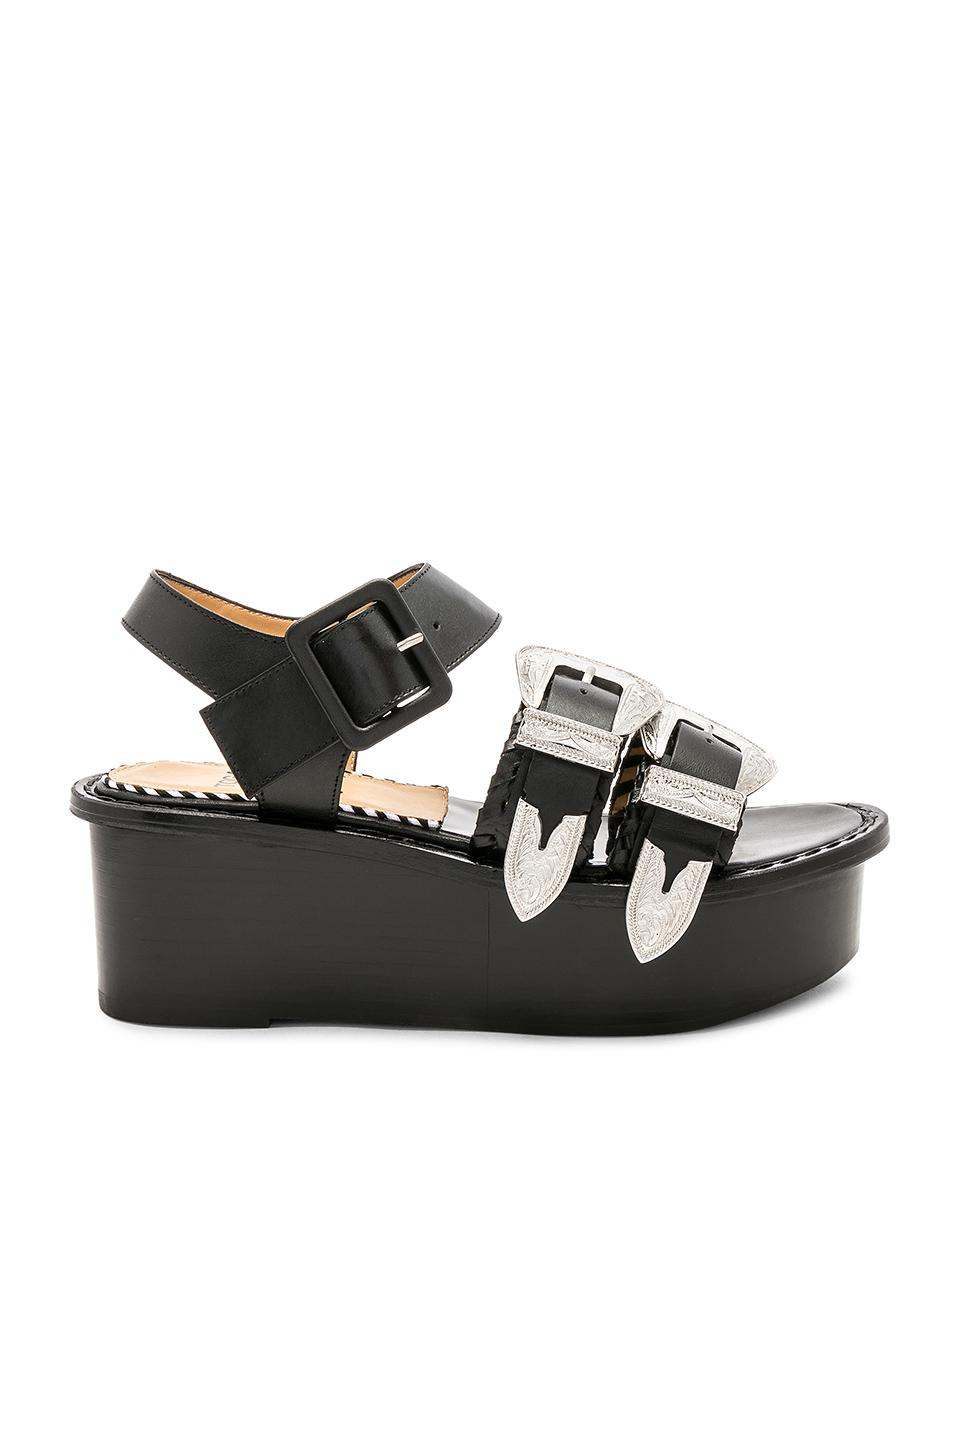 crisscross straps sandals - Black Toga Archives KOdSXyOl